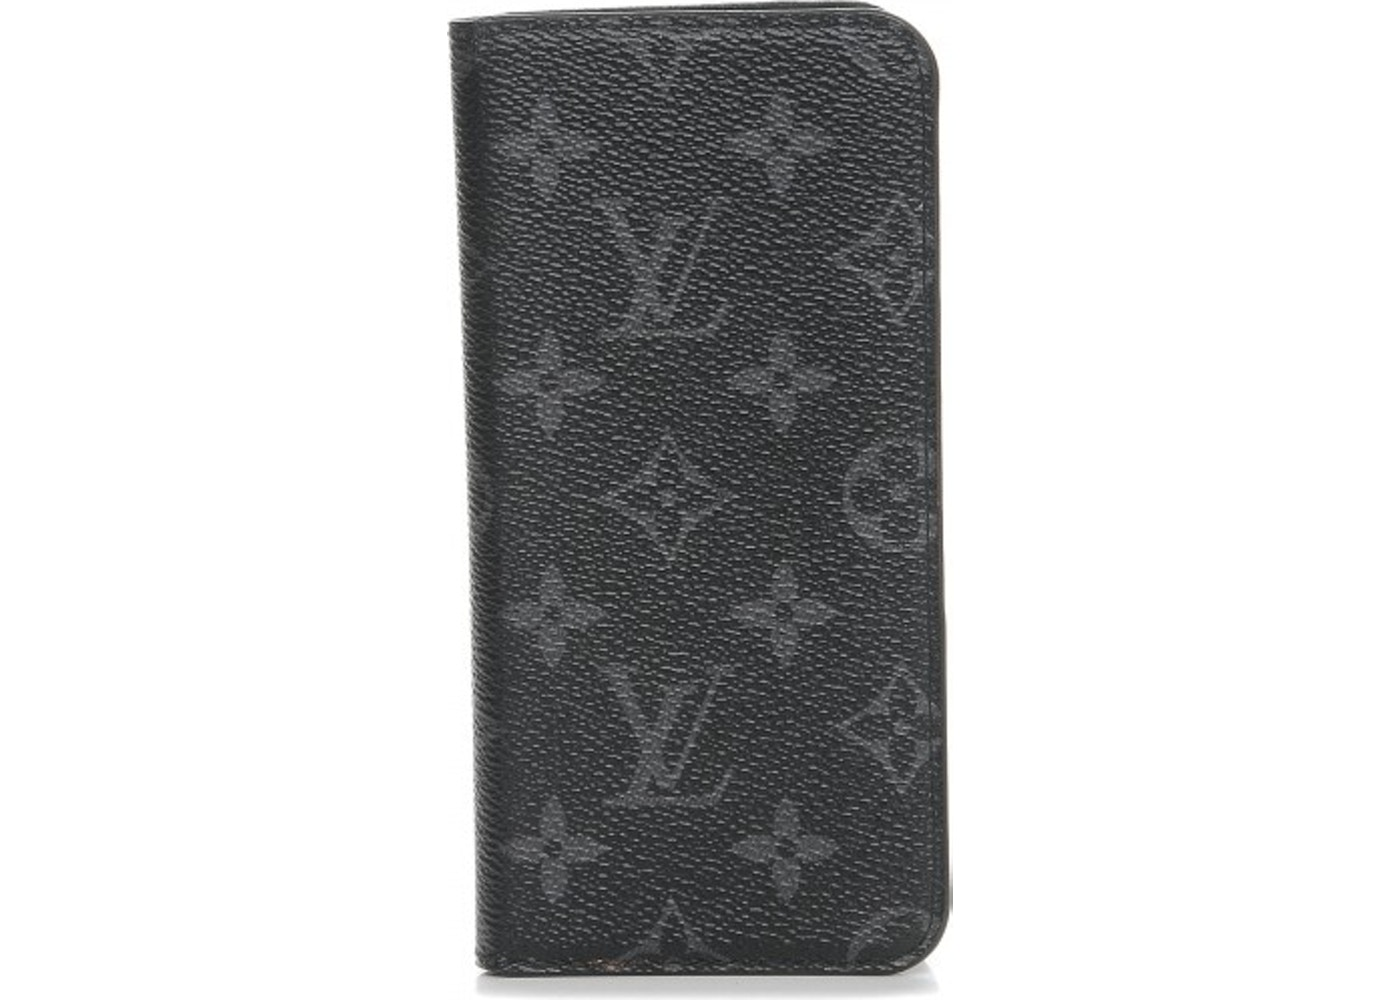 brand new ff775 43db9 Louis Vuitton Folio Case iPhone 7 Plus Monogram Eclipse